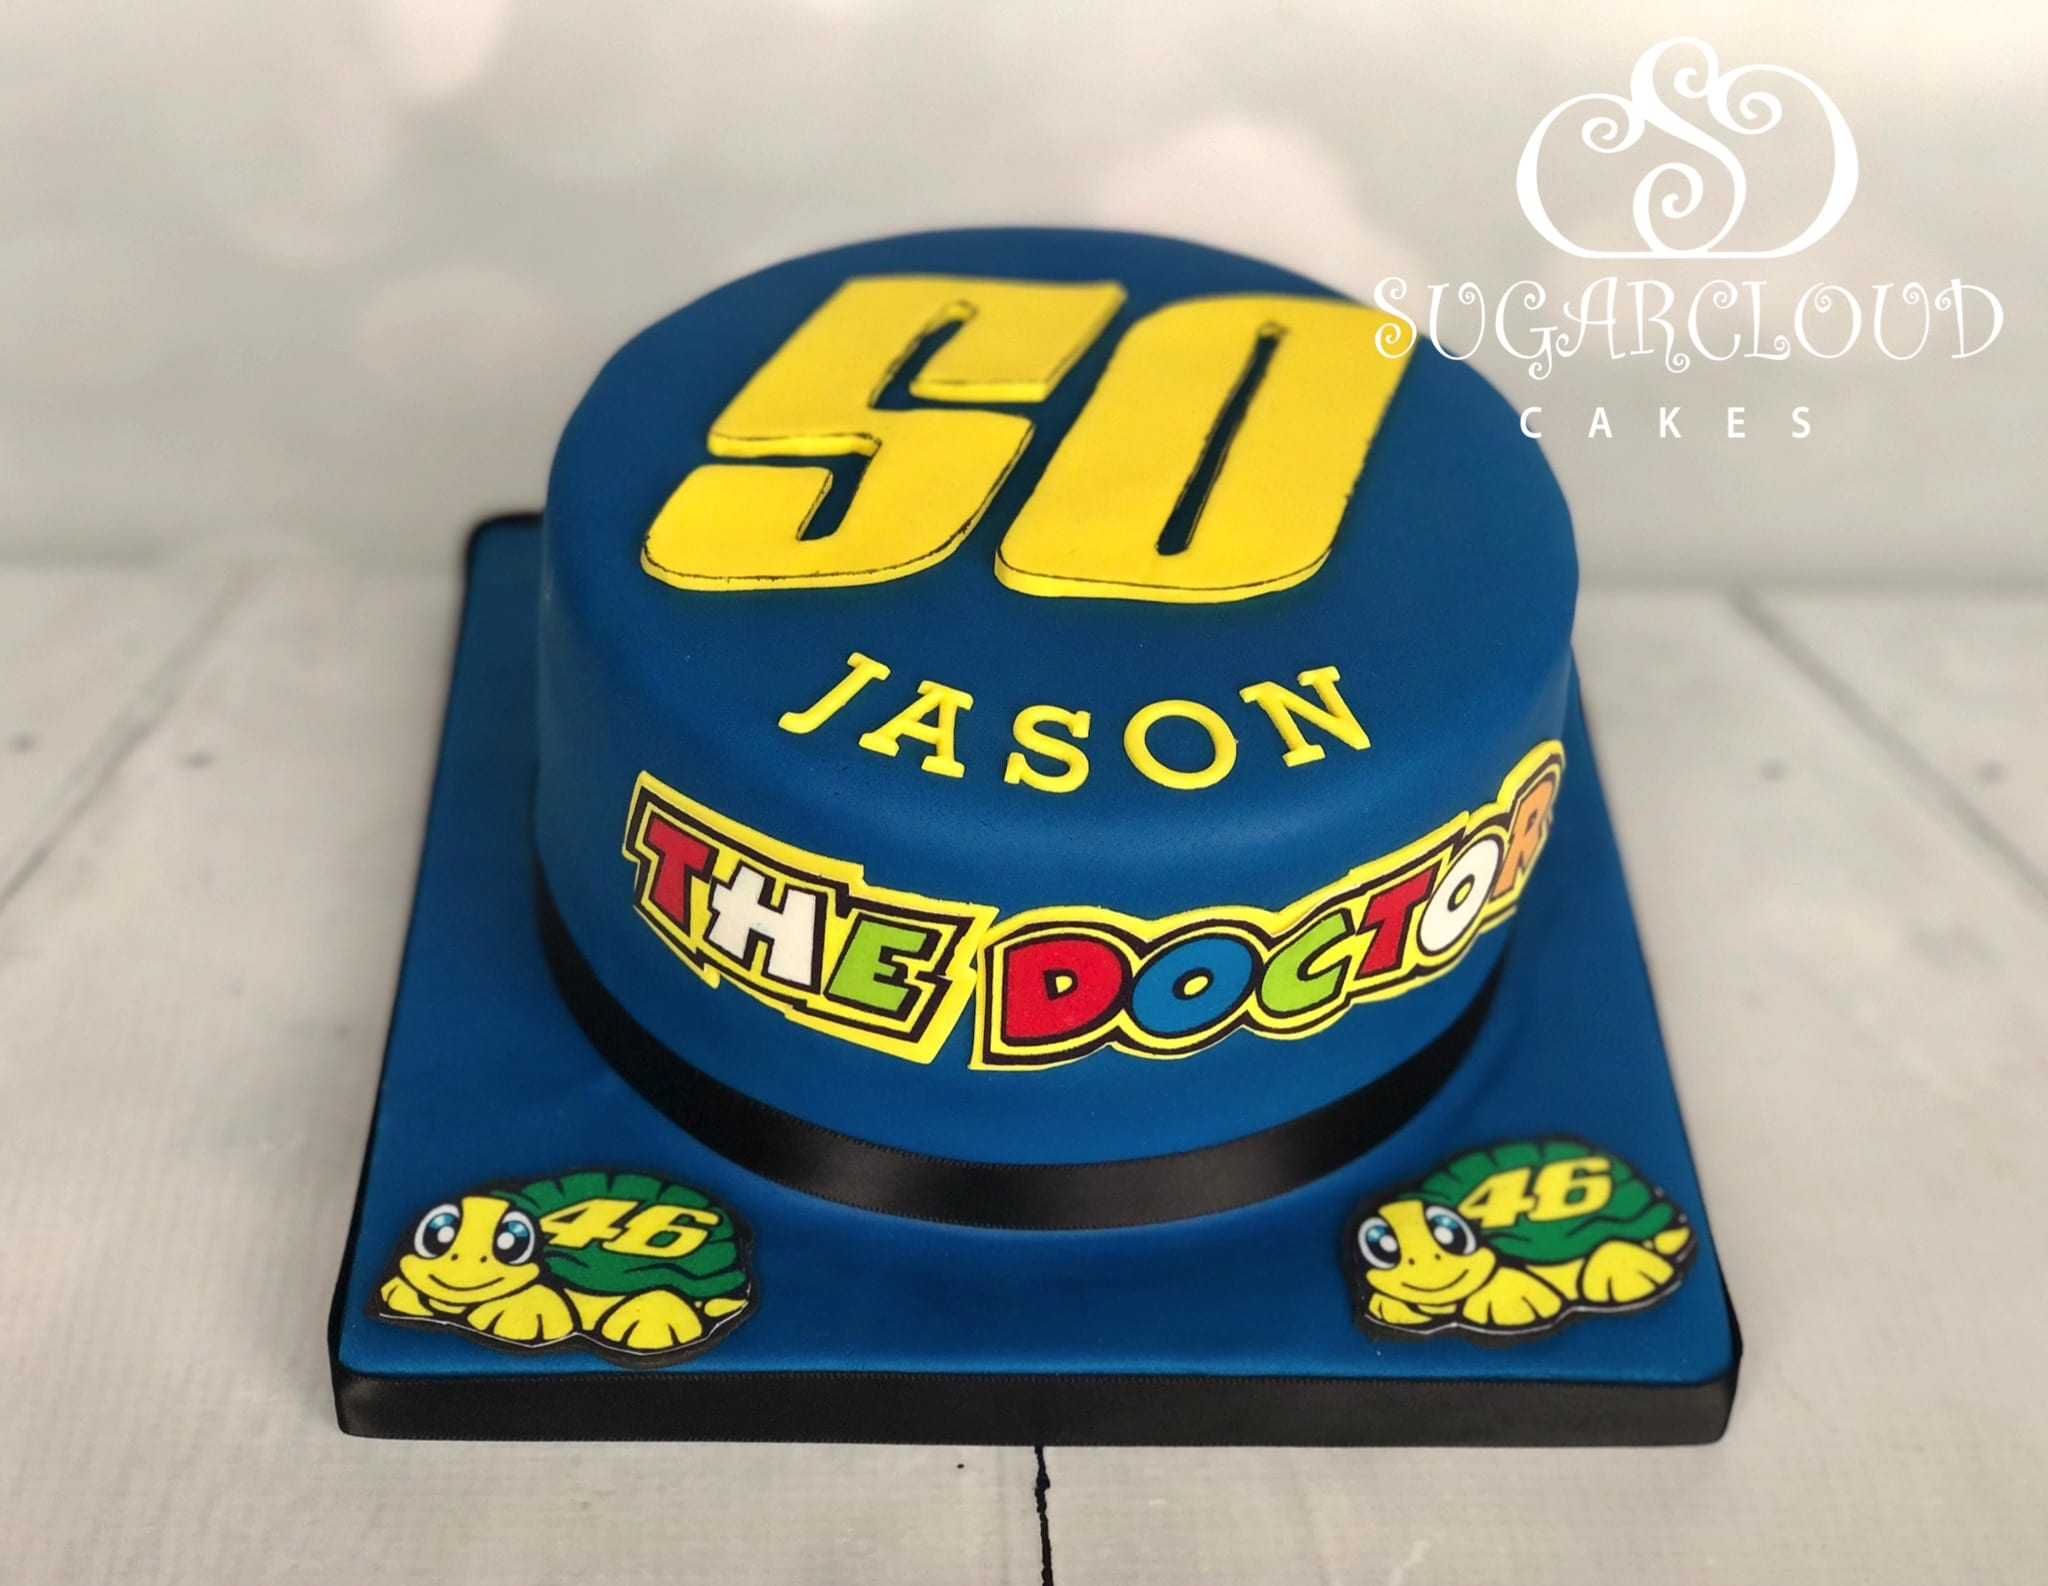 A Valentino Rossi Themed 50th Birthday Cake, Crewe